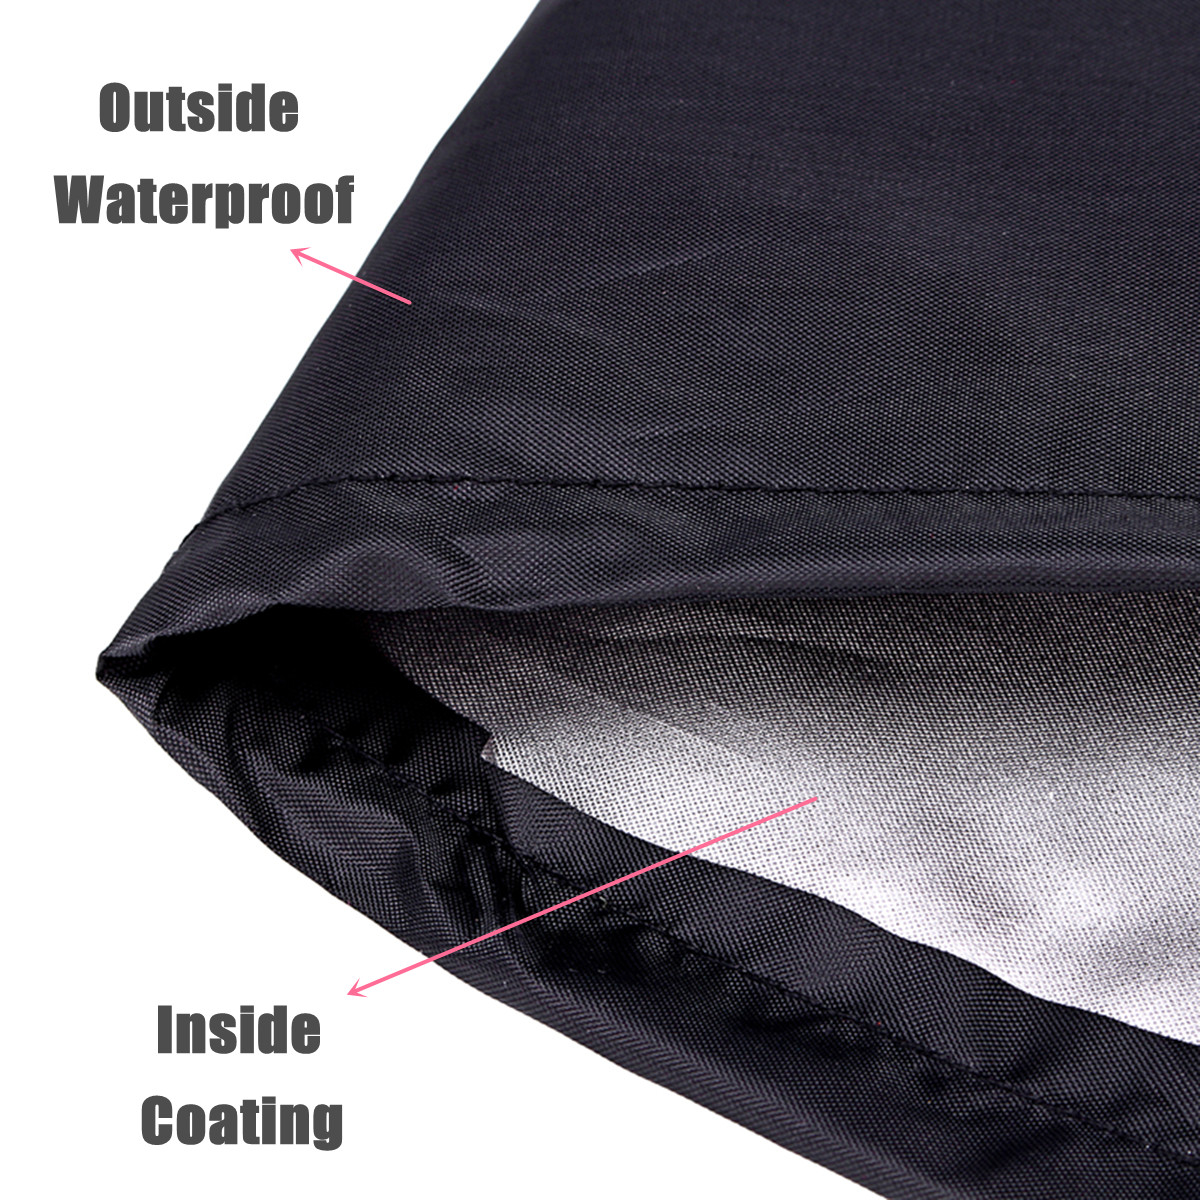 Patio Round Fire Pit Cover Waterproof Grill BBQ Cooking Protector Black